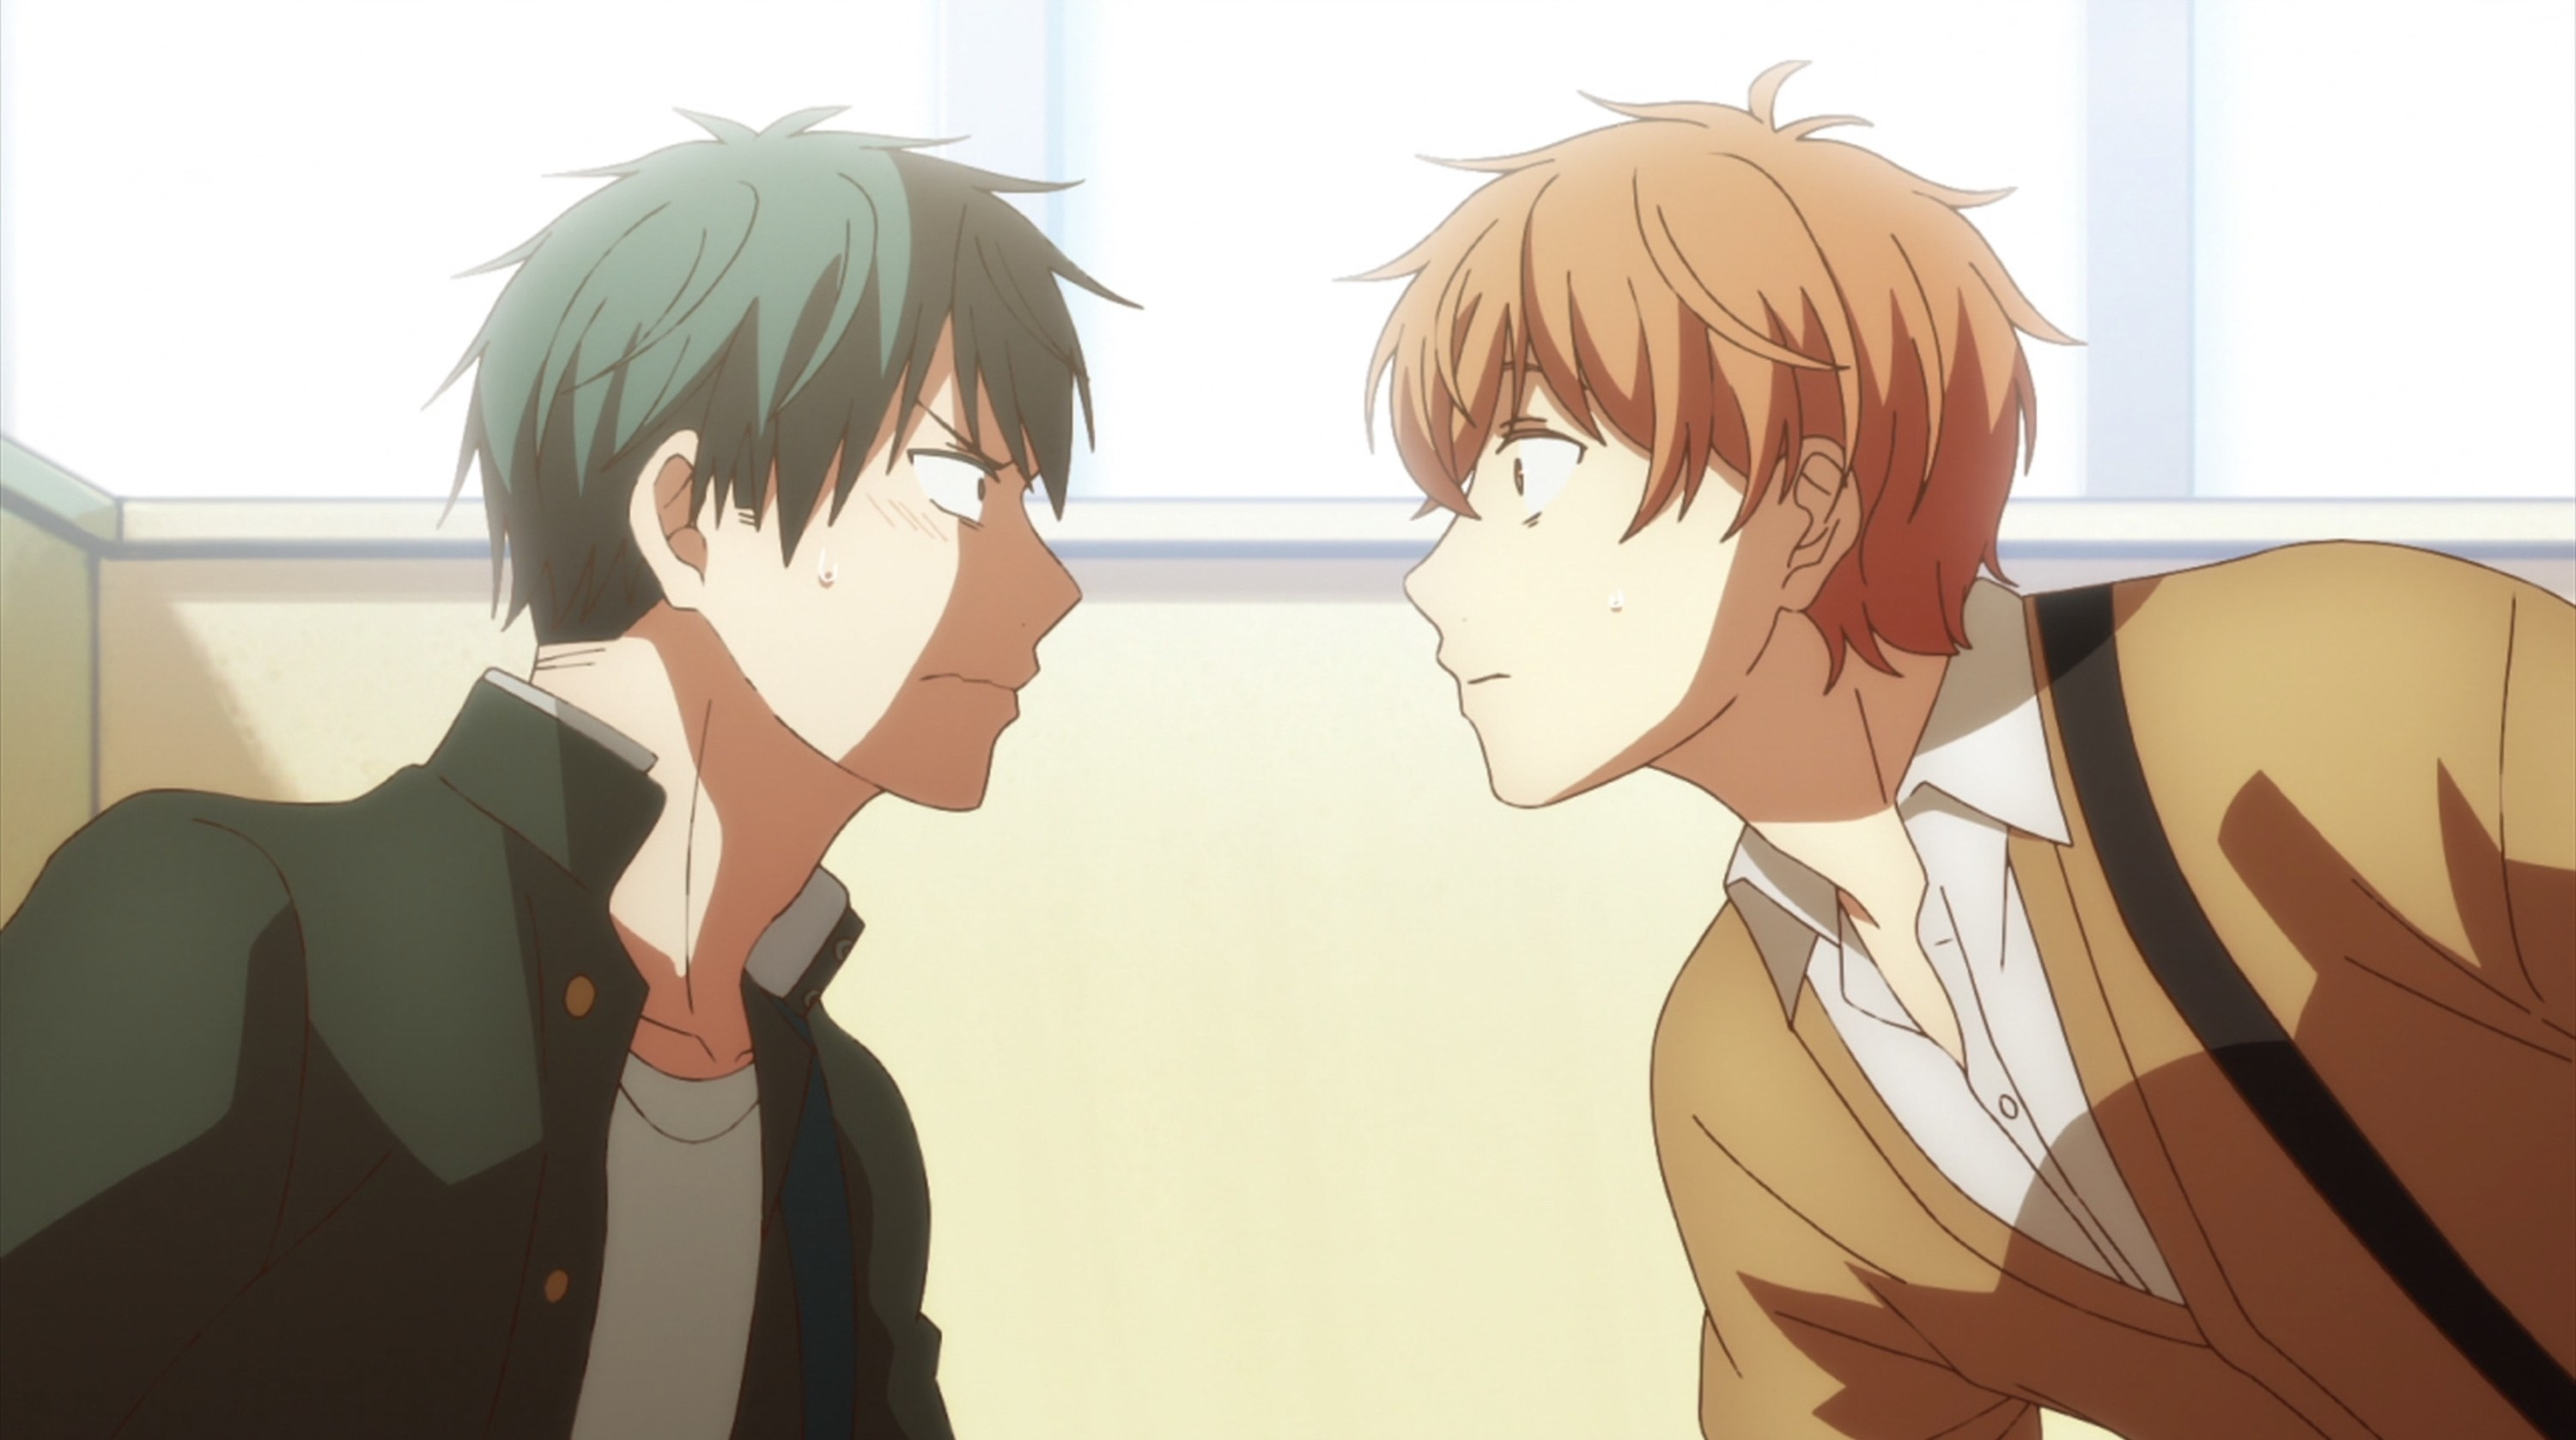 Ritsuka and Mafuyu looking at each other nervously.